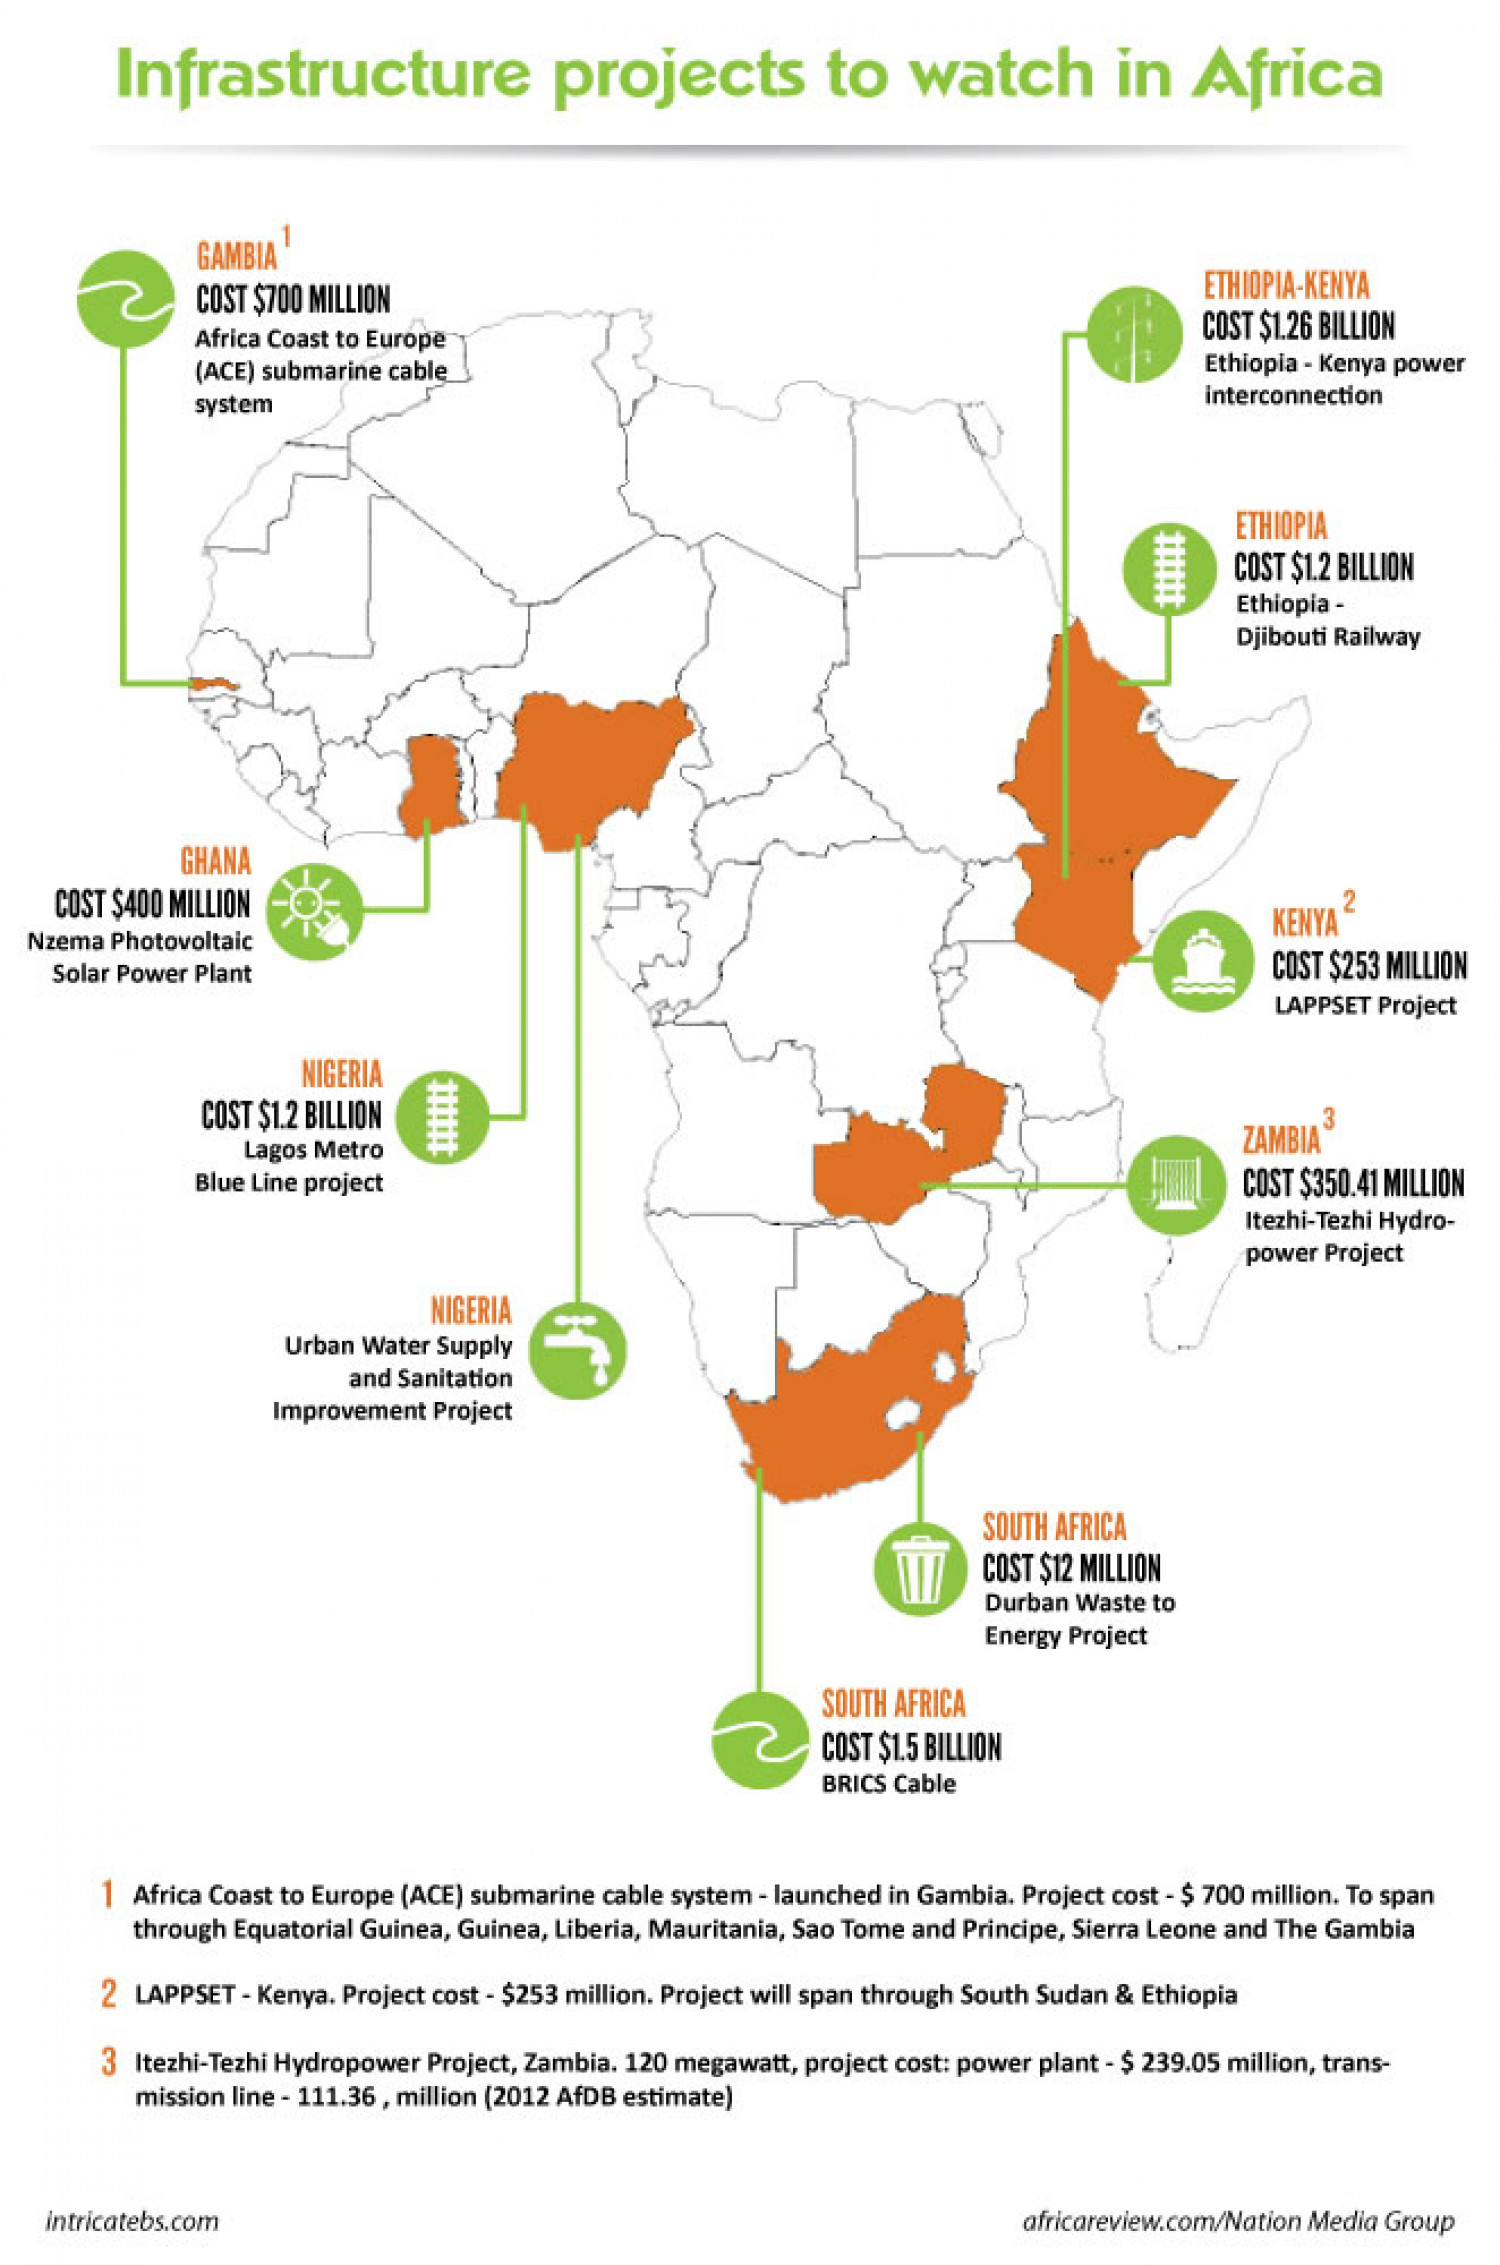 Infrastructure Projects in Africa Infographic